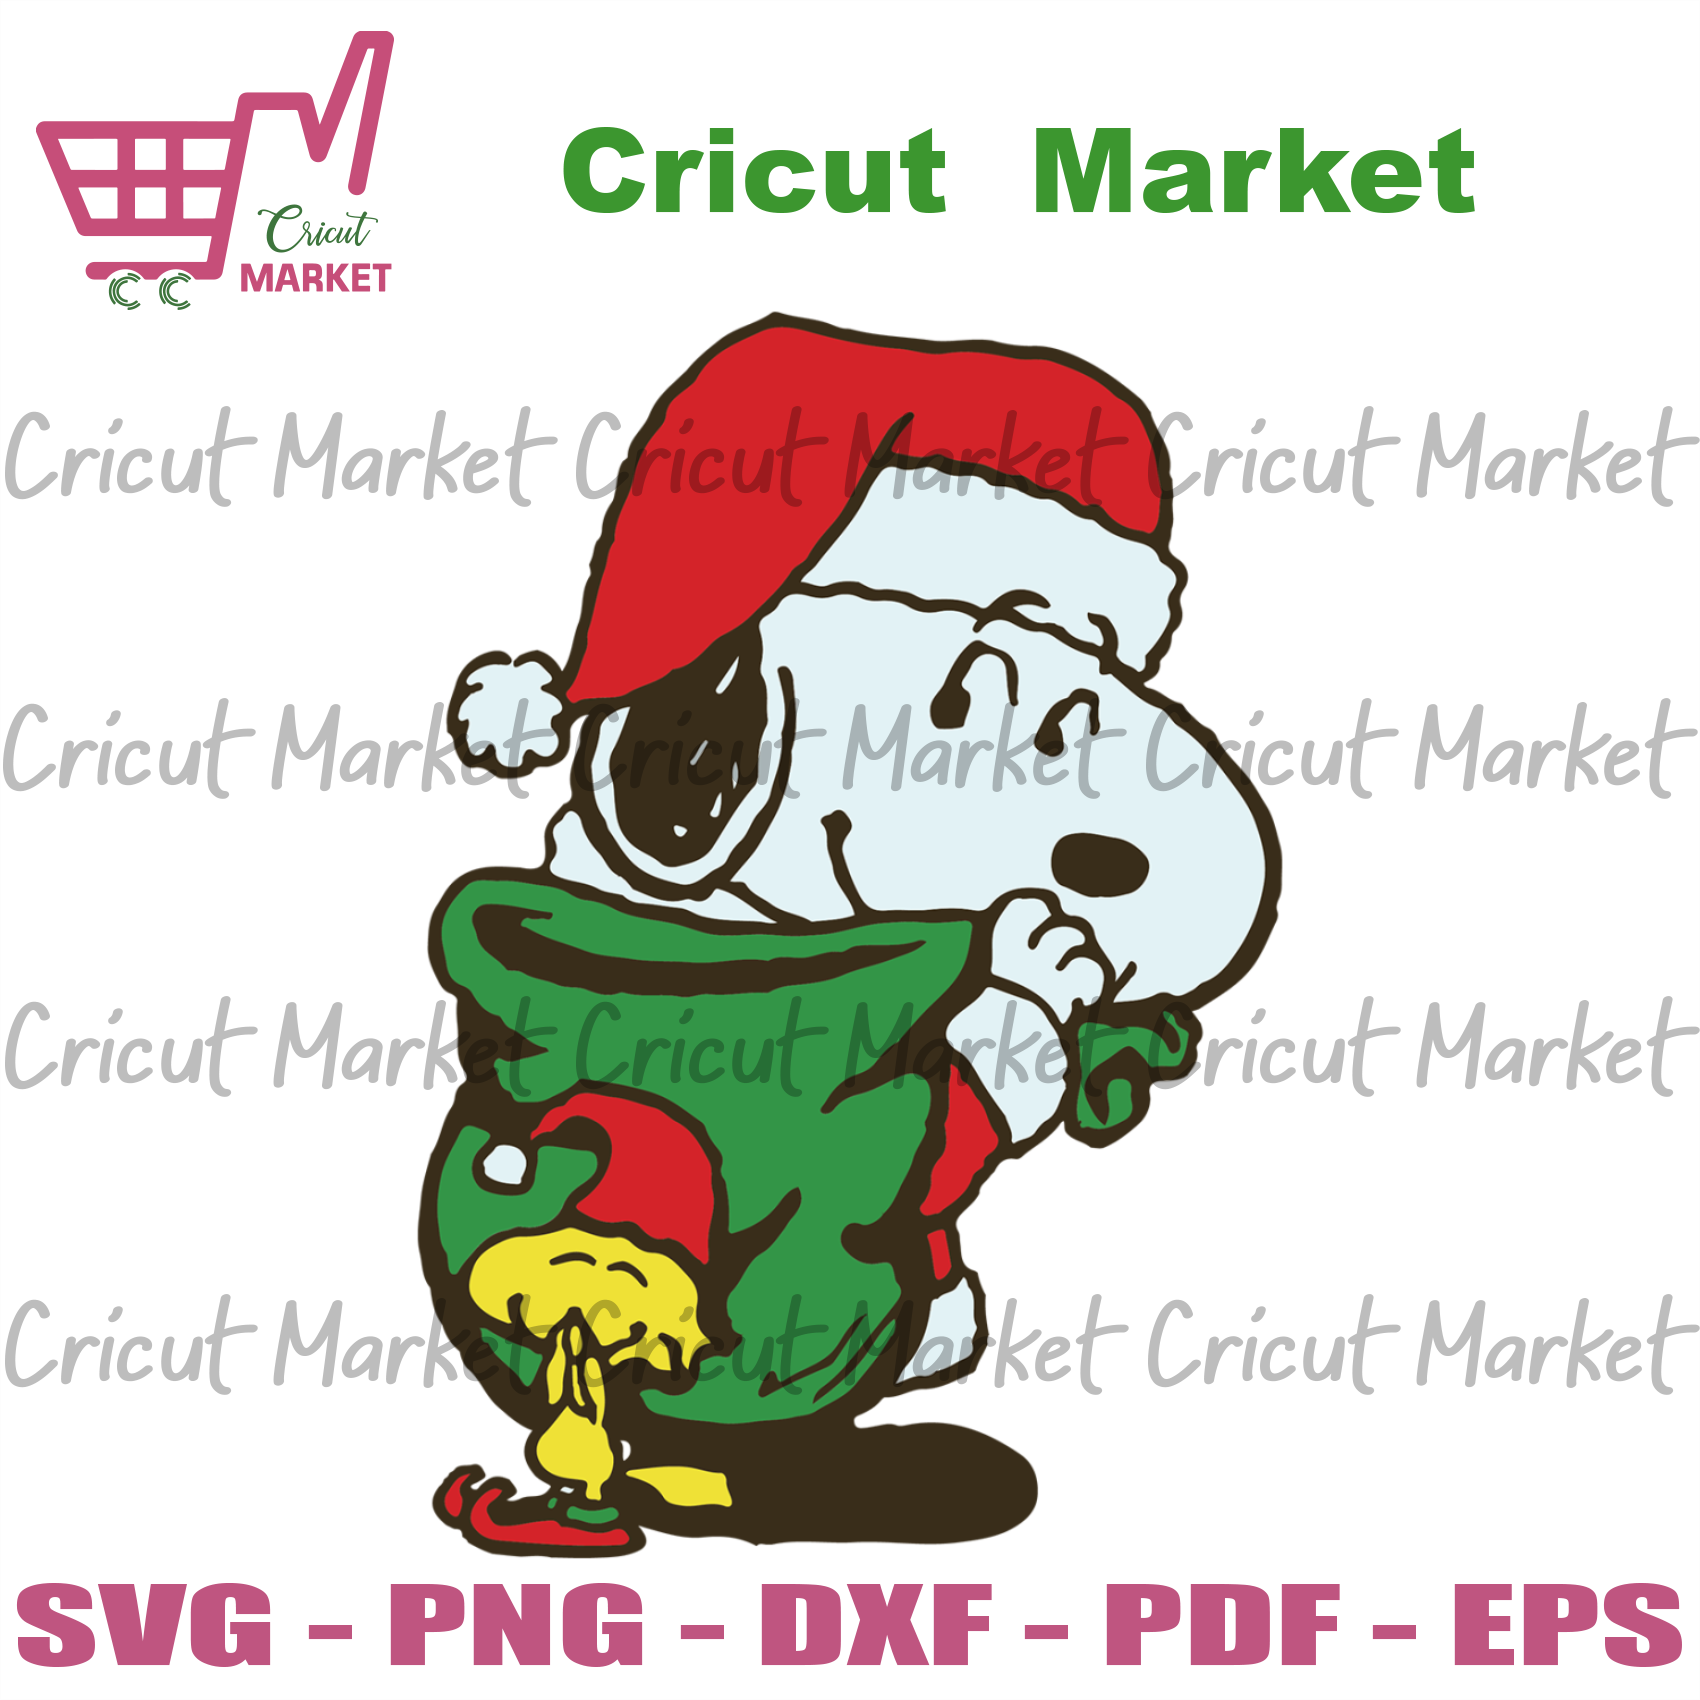 Cute Santa Snoopy, Christmas svg, Christmas gift, Christmas day, Christmas time, Snoopy svg, Snoopy cartoon, Santa Snoopy, cute Santa Snoopy, Snoopy fan, sweet Snoopy, gift from Snoopy - Cric